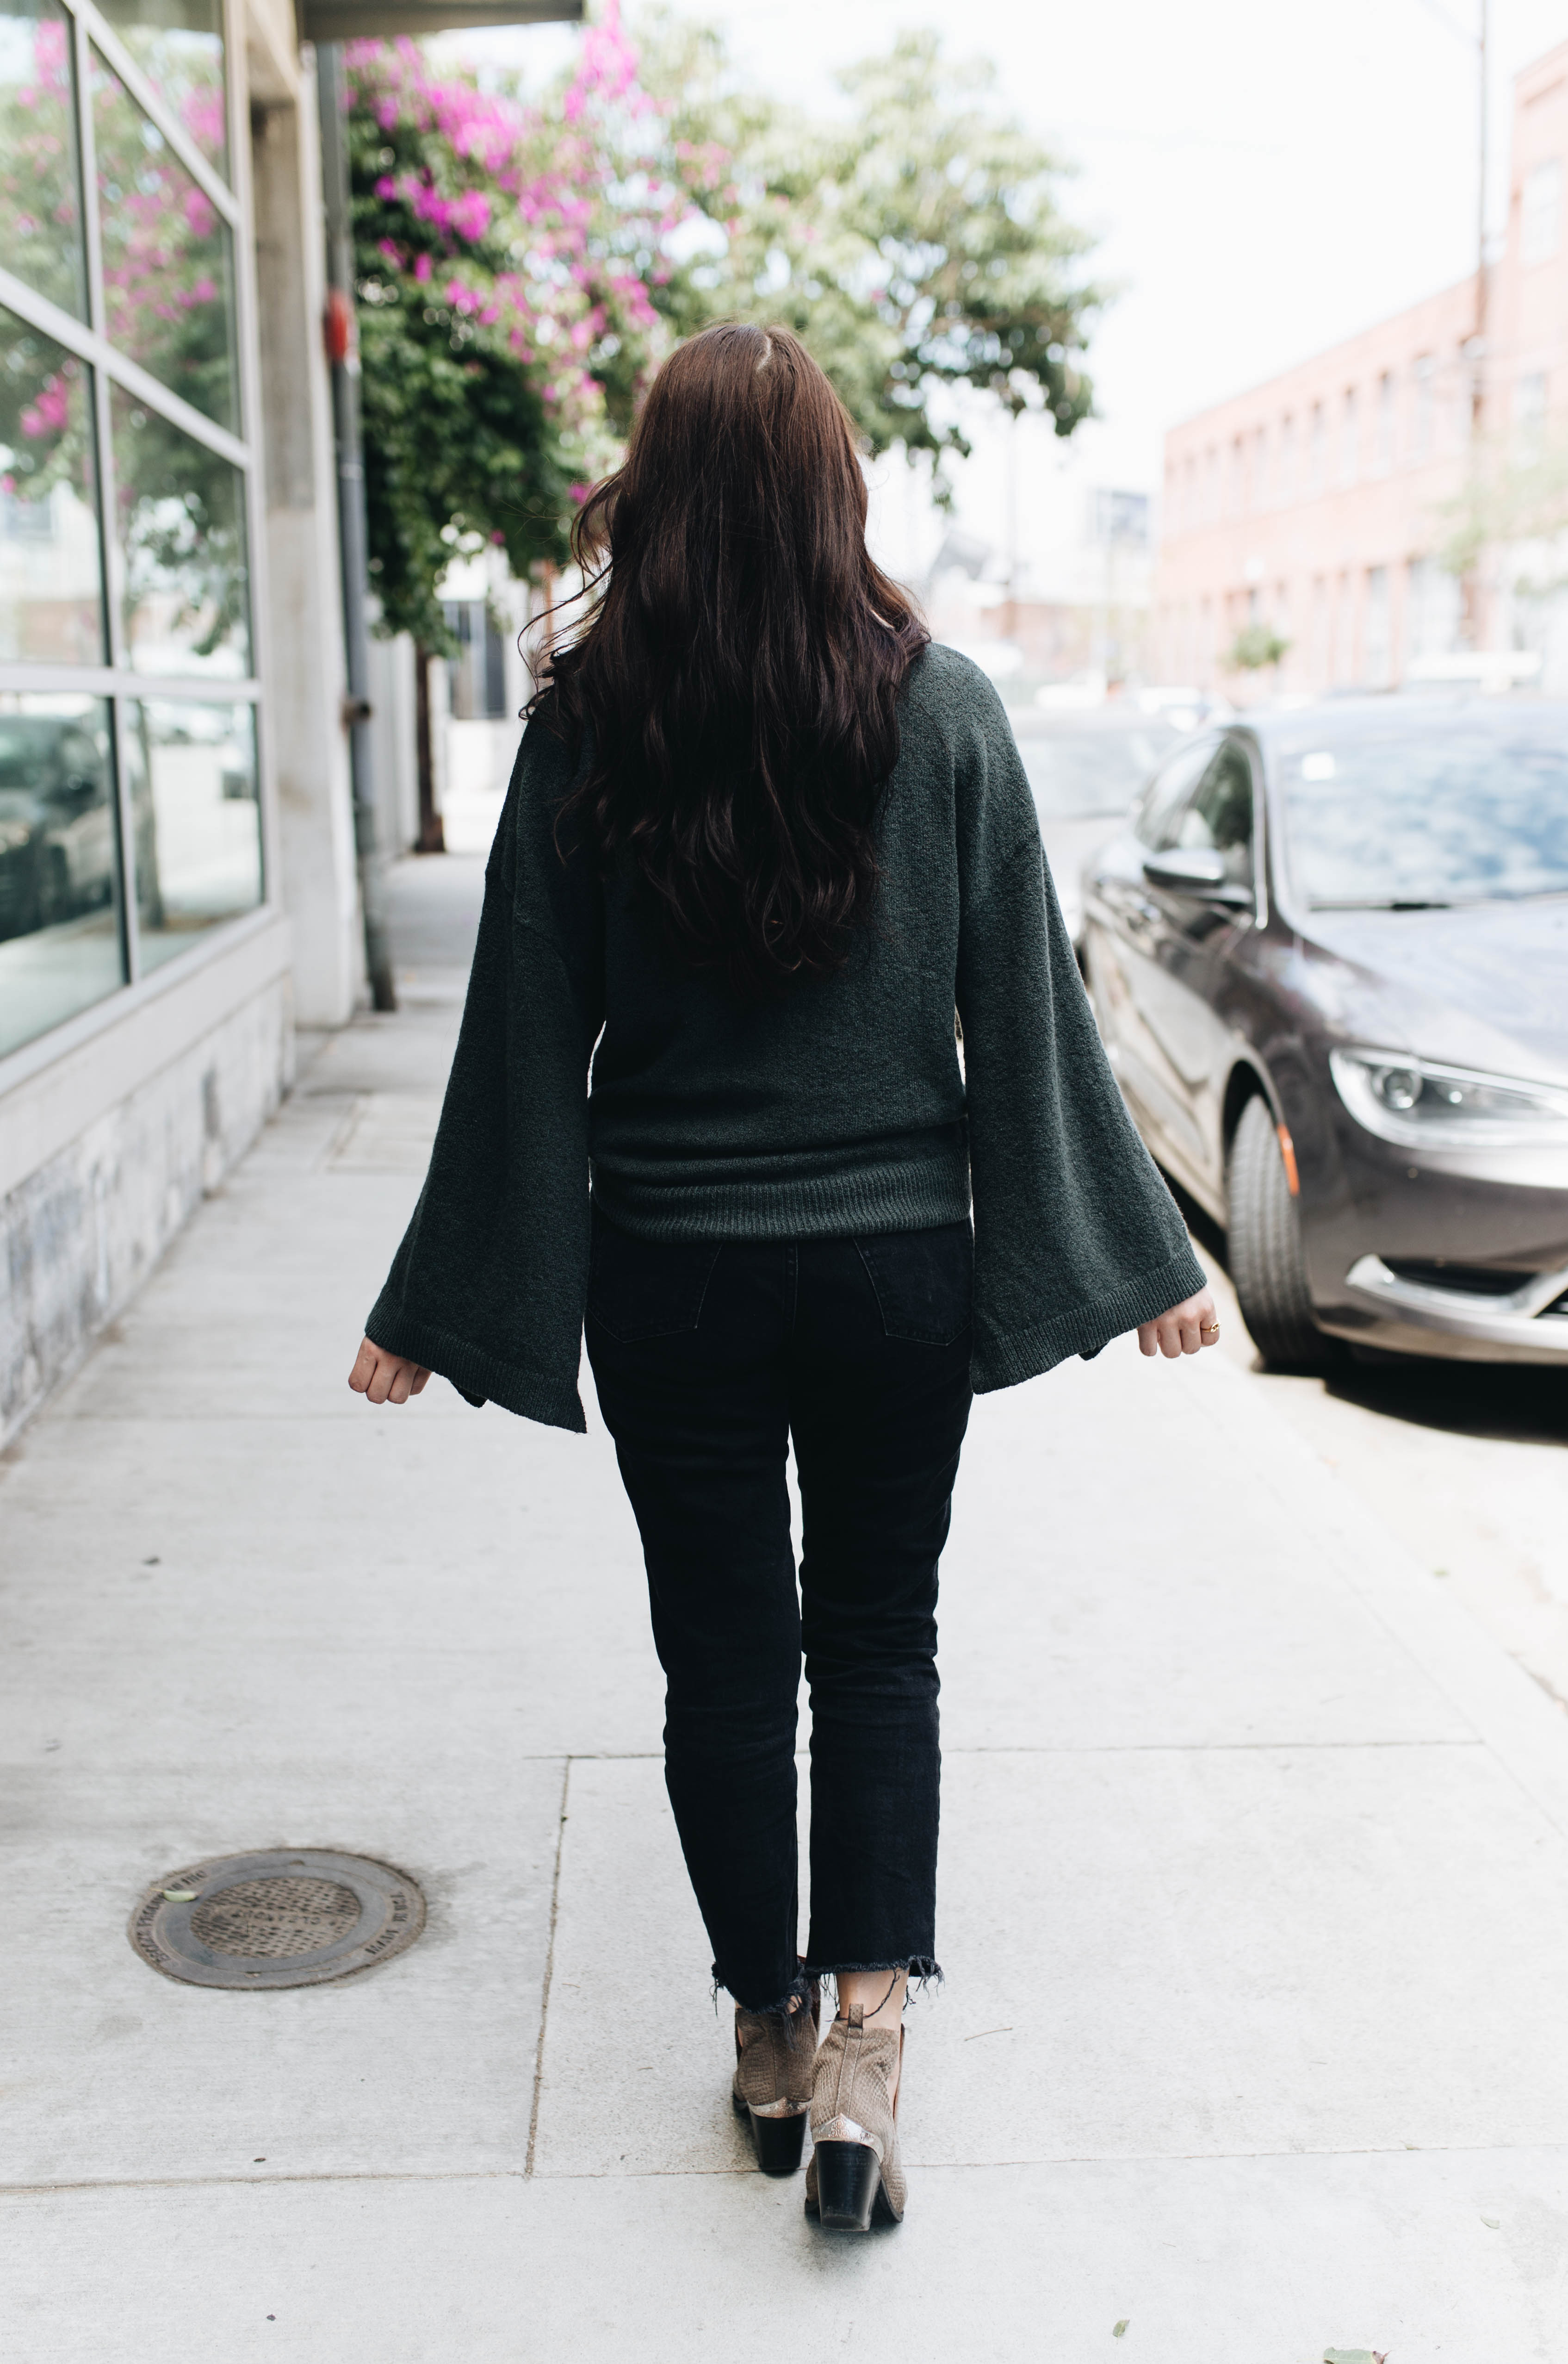 Bell Sleeves & Boots | Twinspiration